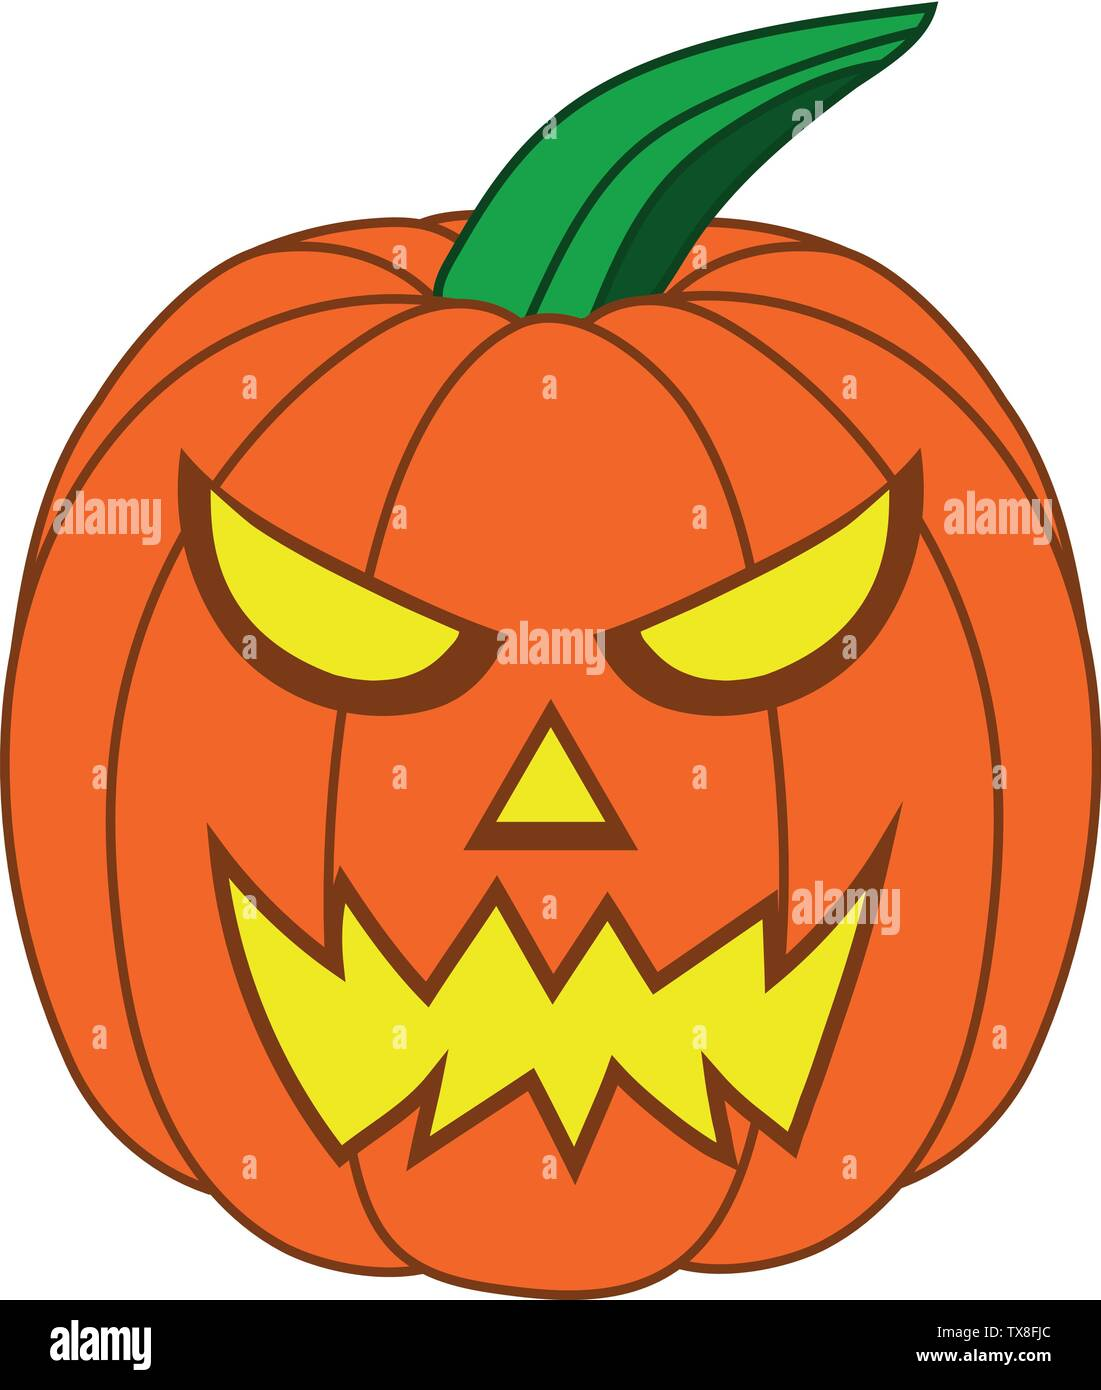 Cute Cartoon Halloween Pictures : cartoon, halloween, pictures, Cartoon, Halloween, Pumpkin, Funny, Face,, Isolated, White, Background, Design,, Game,, Card., Jack-O-Lantern., Vector, Illustration, Stock, Image, Alamy